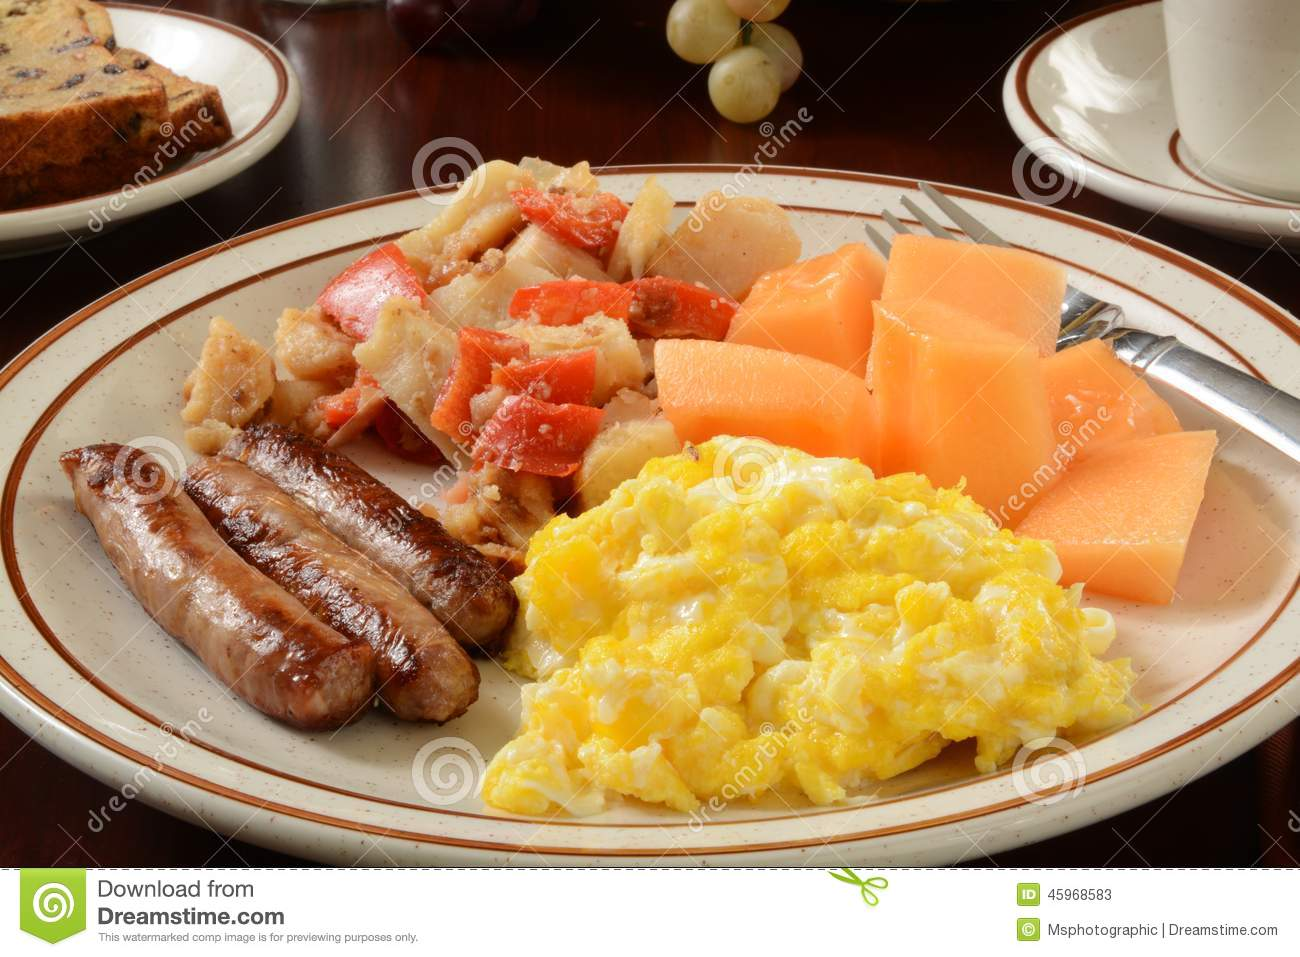 eggs and cantaloupe